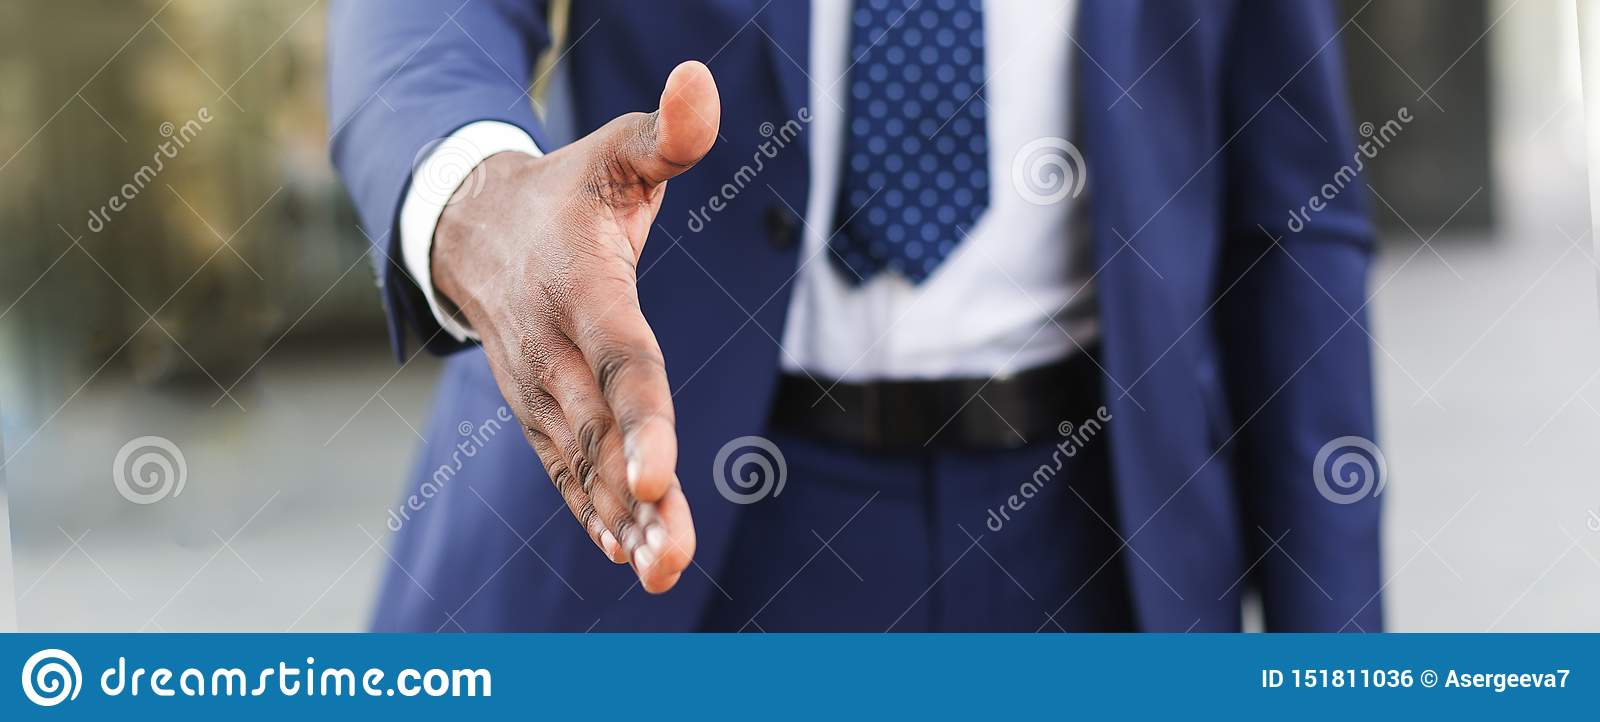 Business partnership meeting concept. Businesman extending hand for greeting